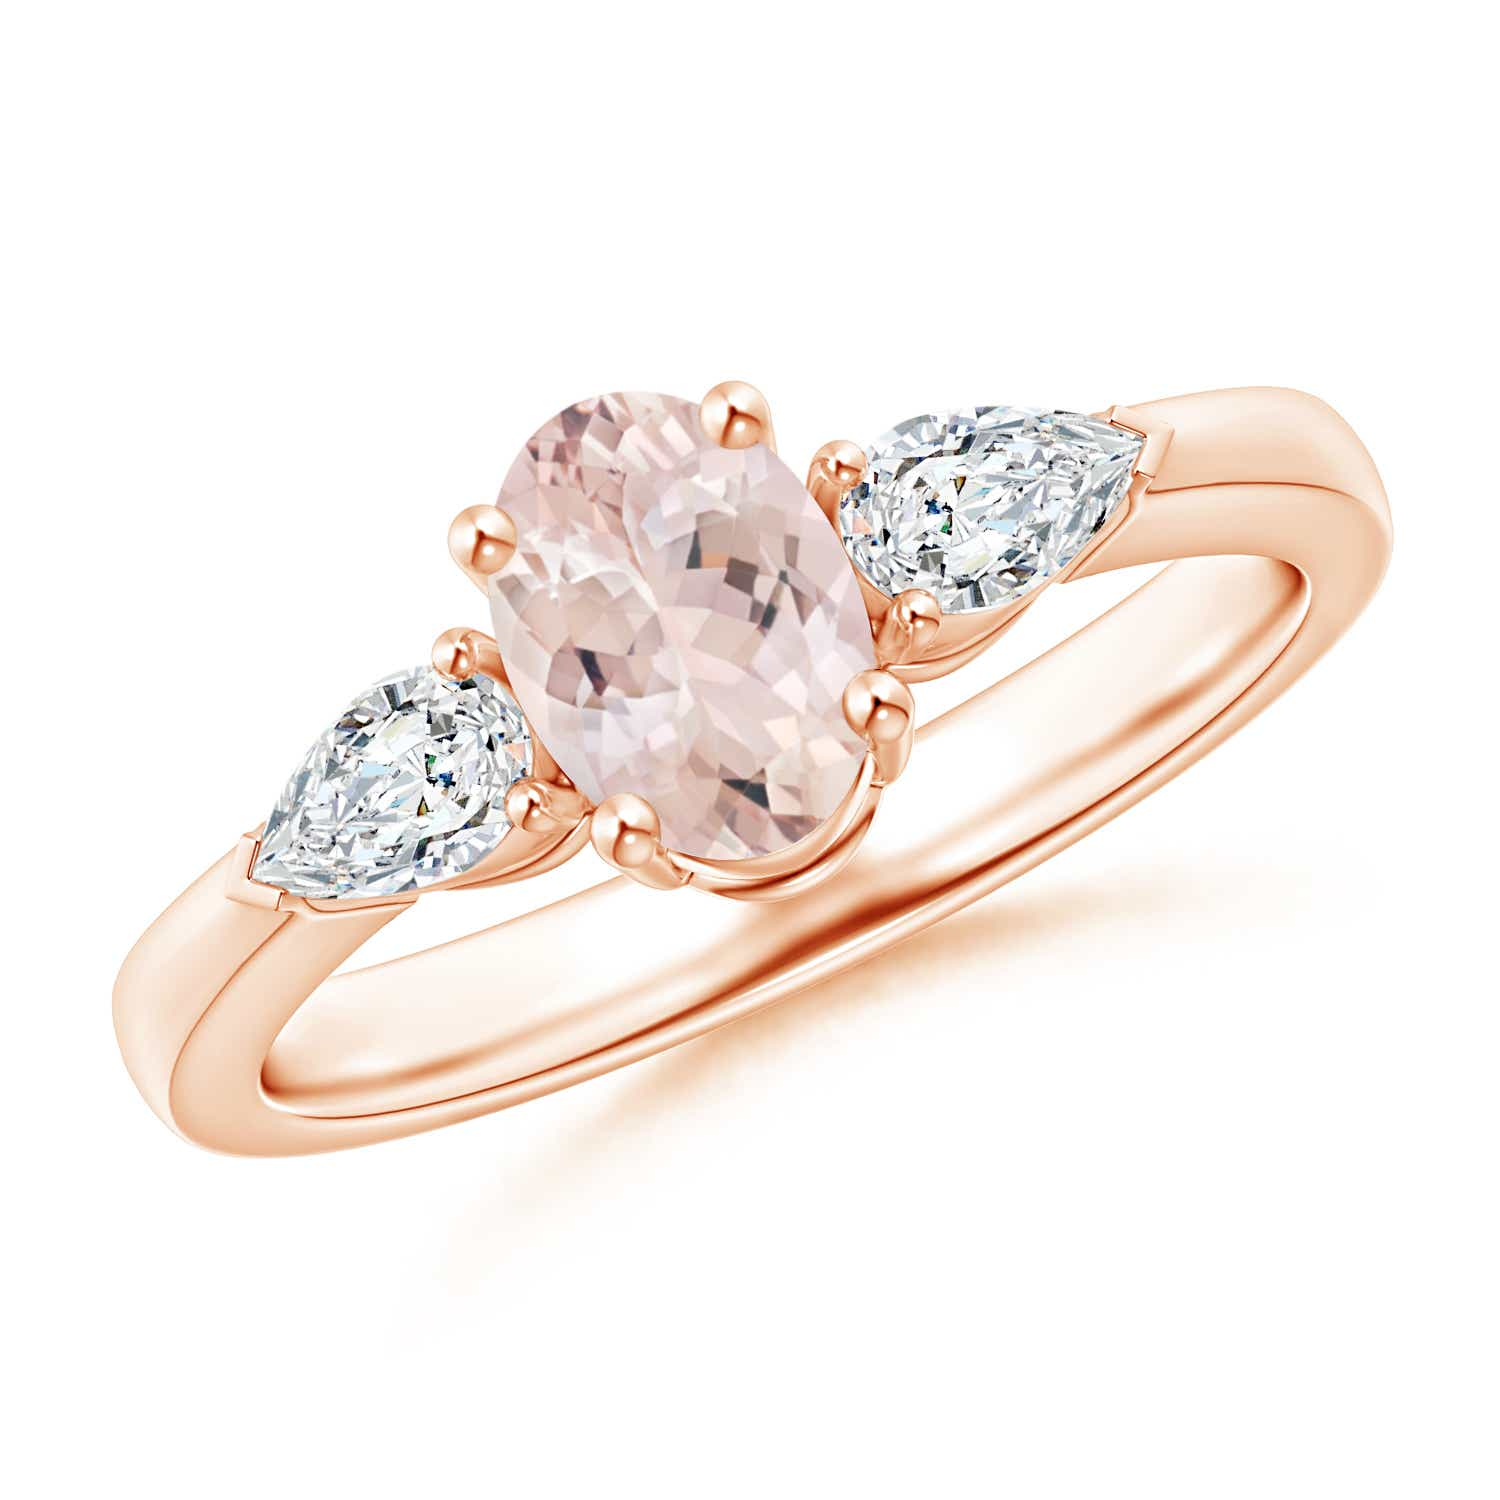 Angara Three Stone Morganite Diamond Ring in White Gold Eki3e0MDZP